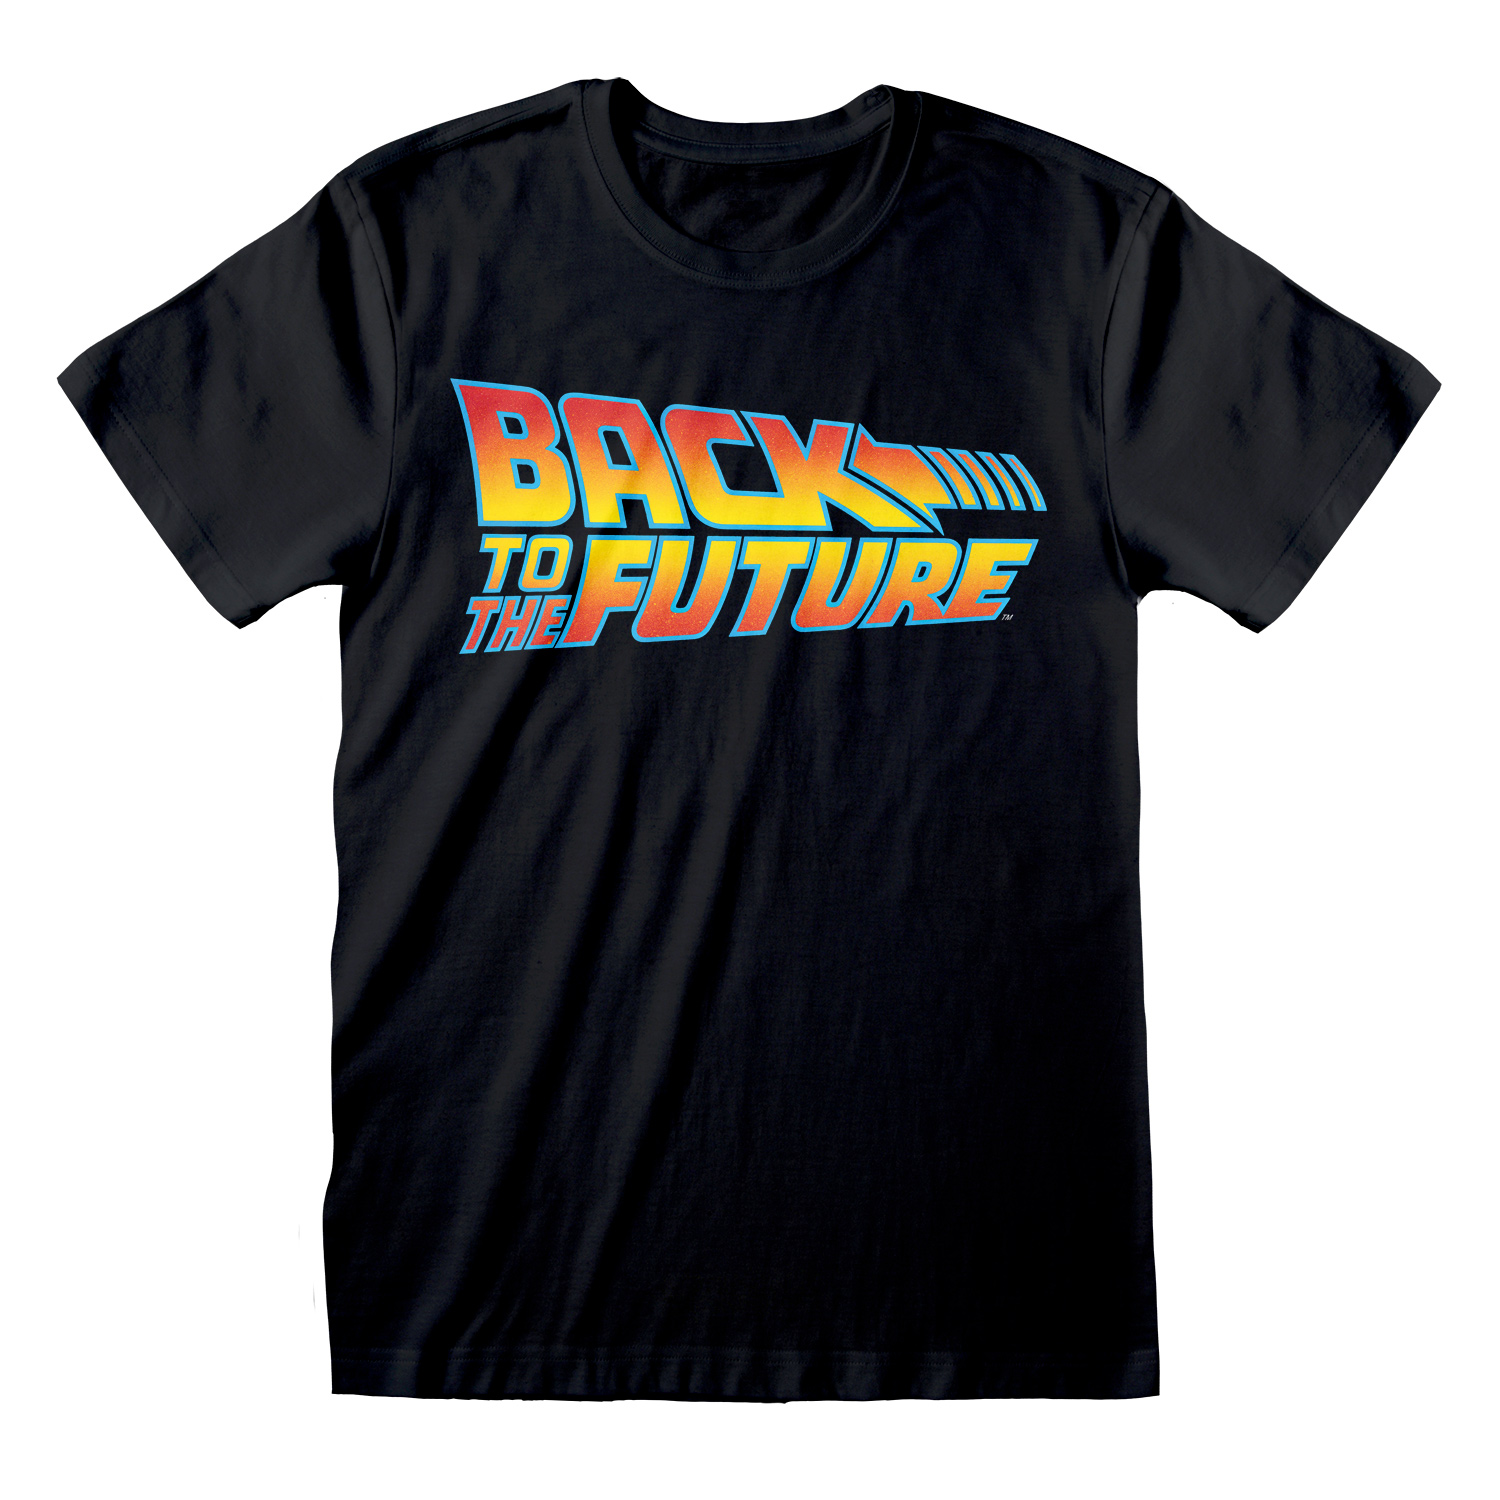 BACK TO THE FUTURE T-SHIRT LOGO SIZE M